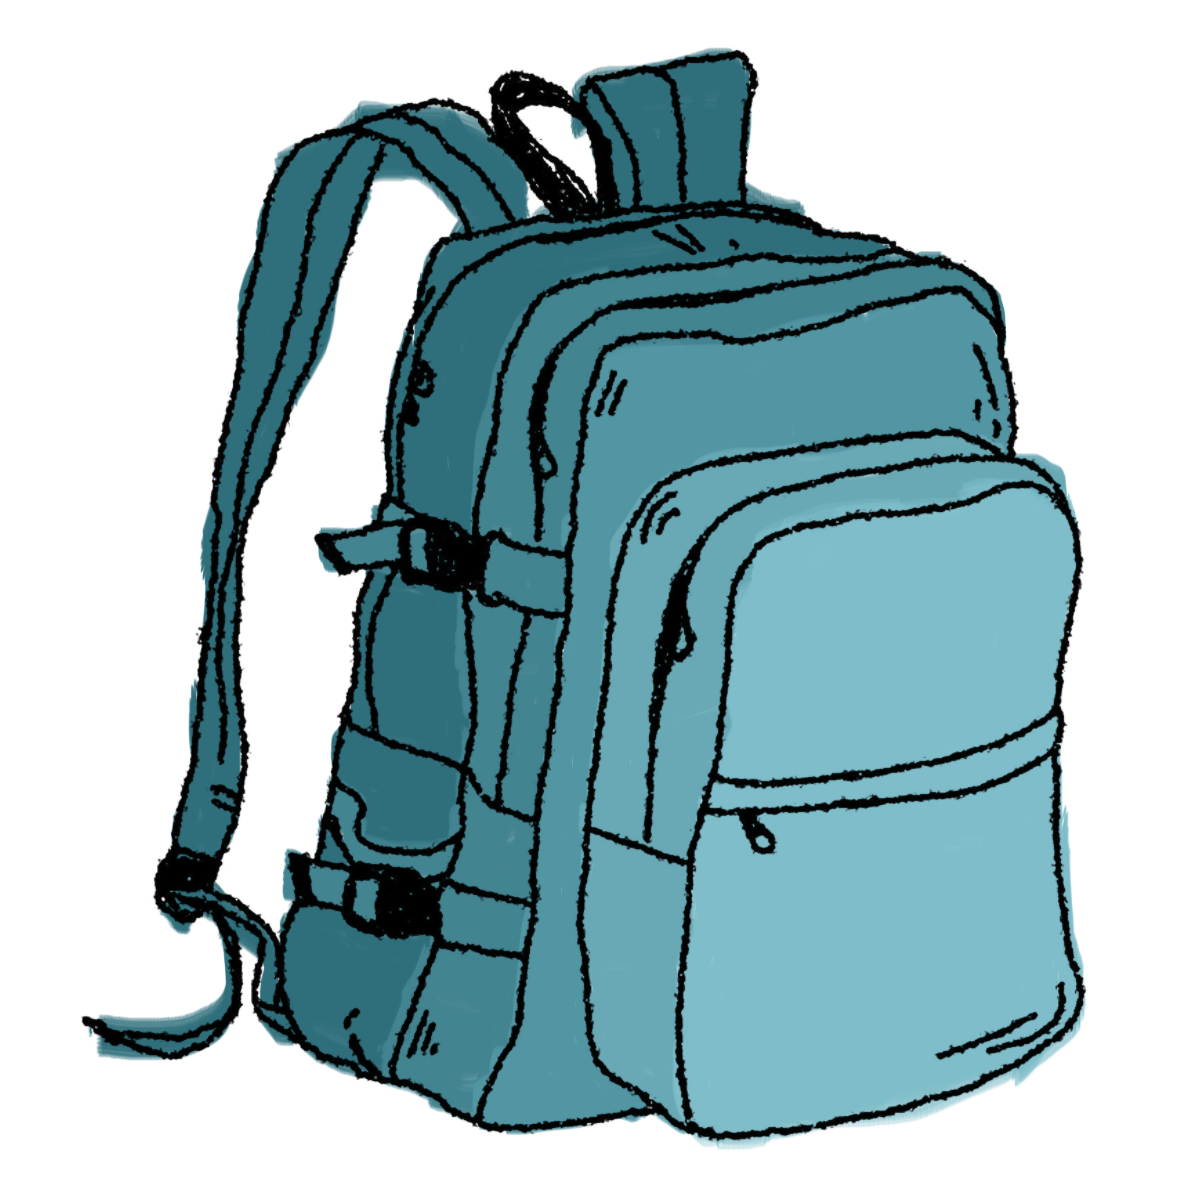 hiking backpack clip art free book bag pinterest hiking rh pinterest com backpack clipart pictures backpack clipart pictures